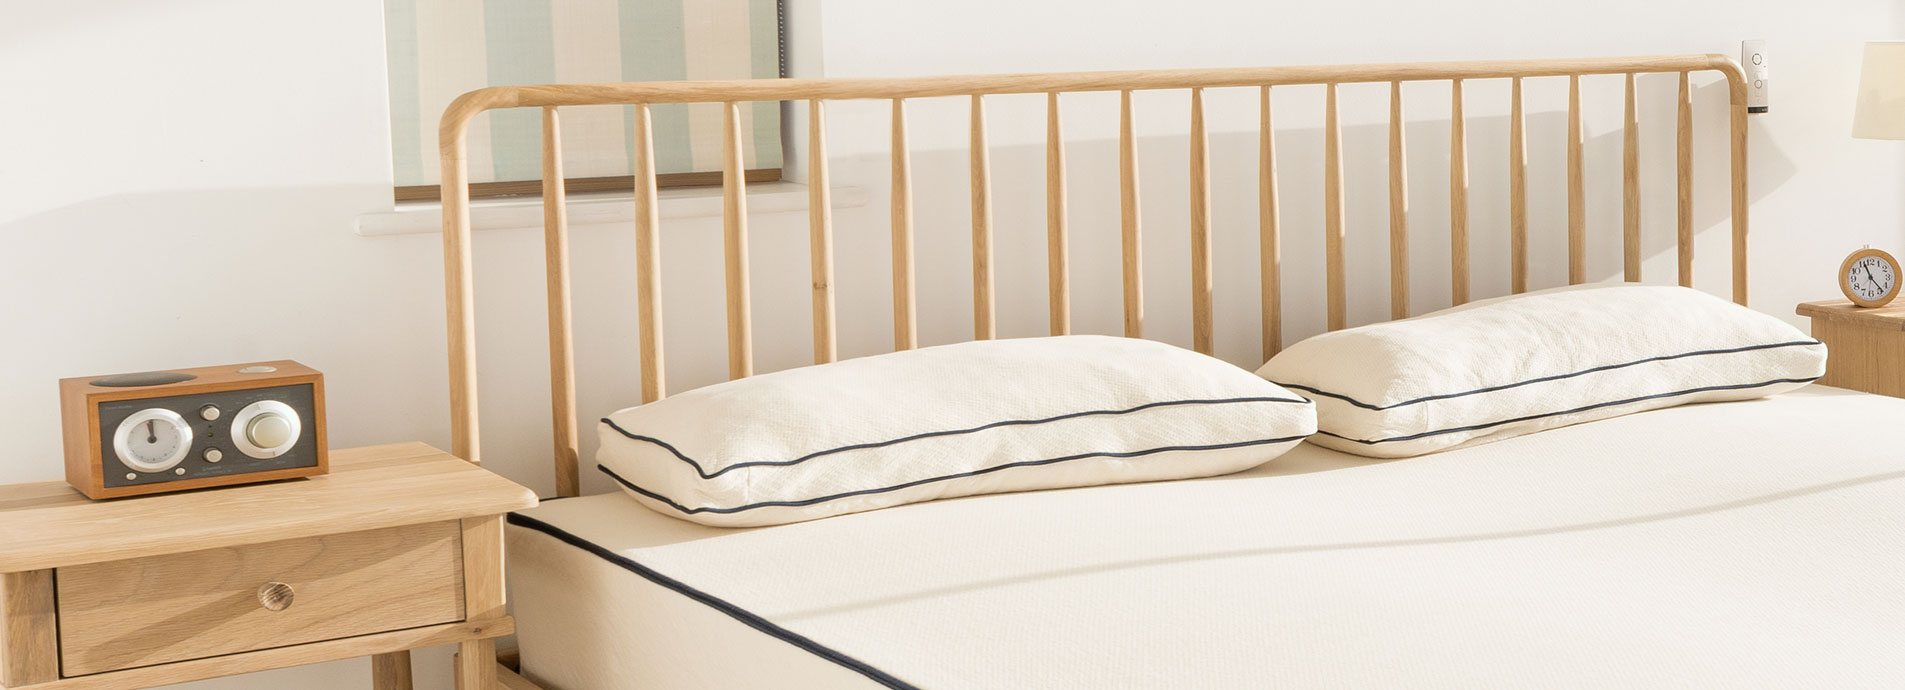 5 Tips when buying a new mattress